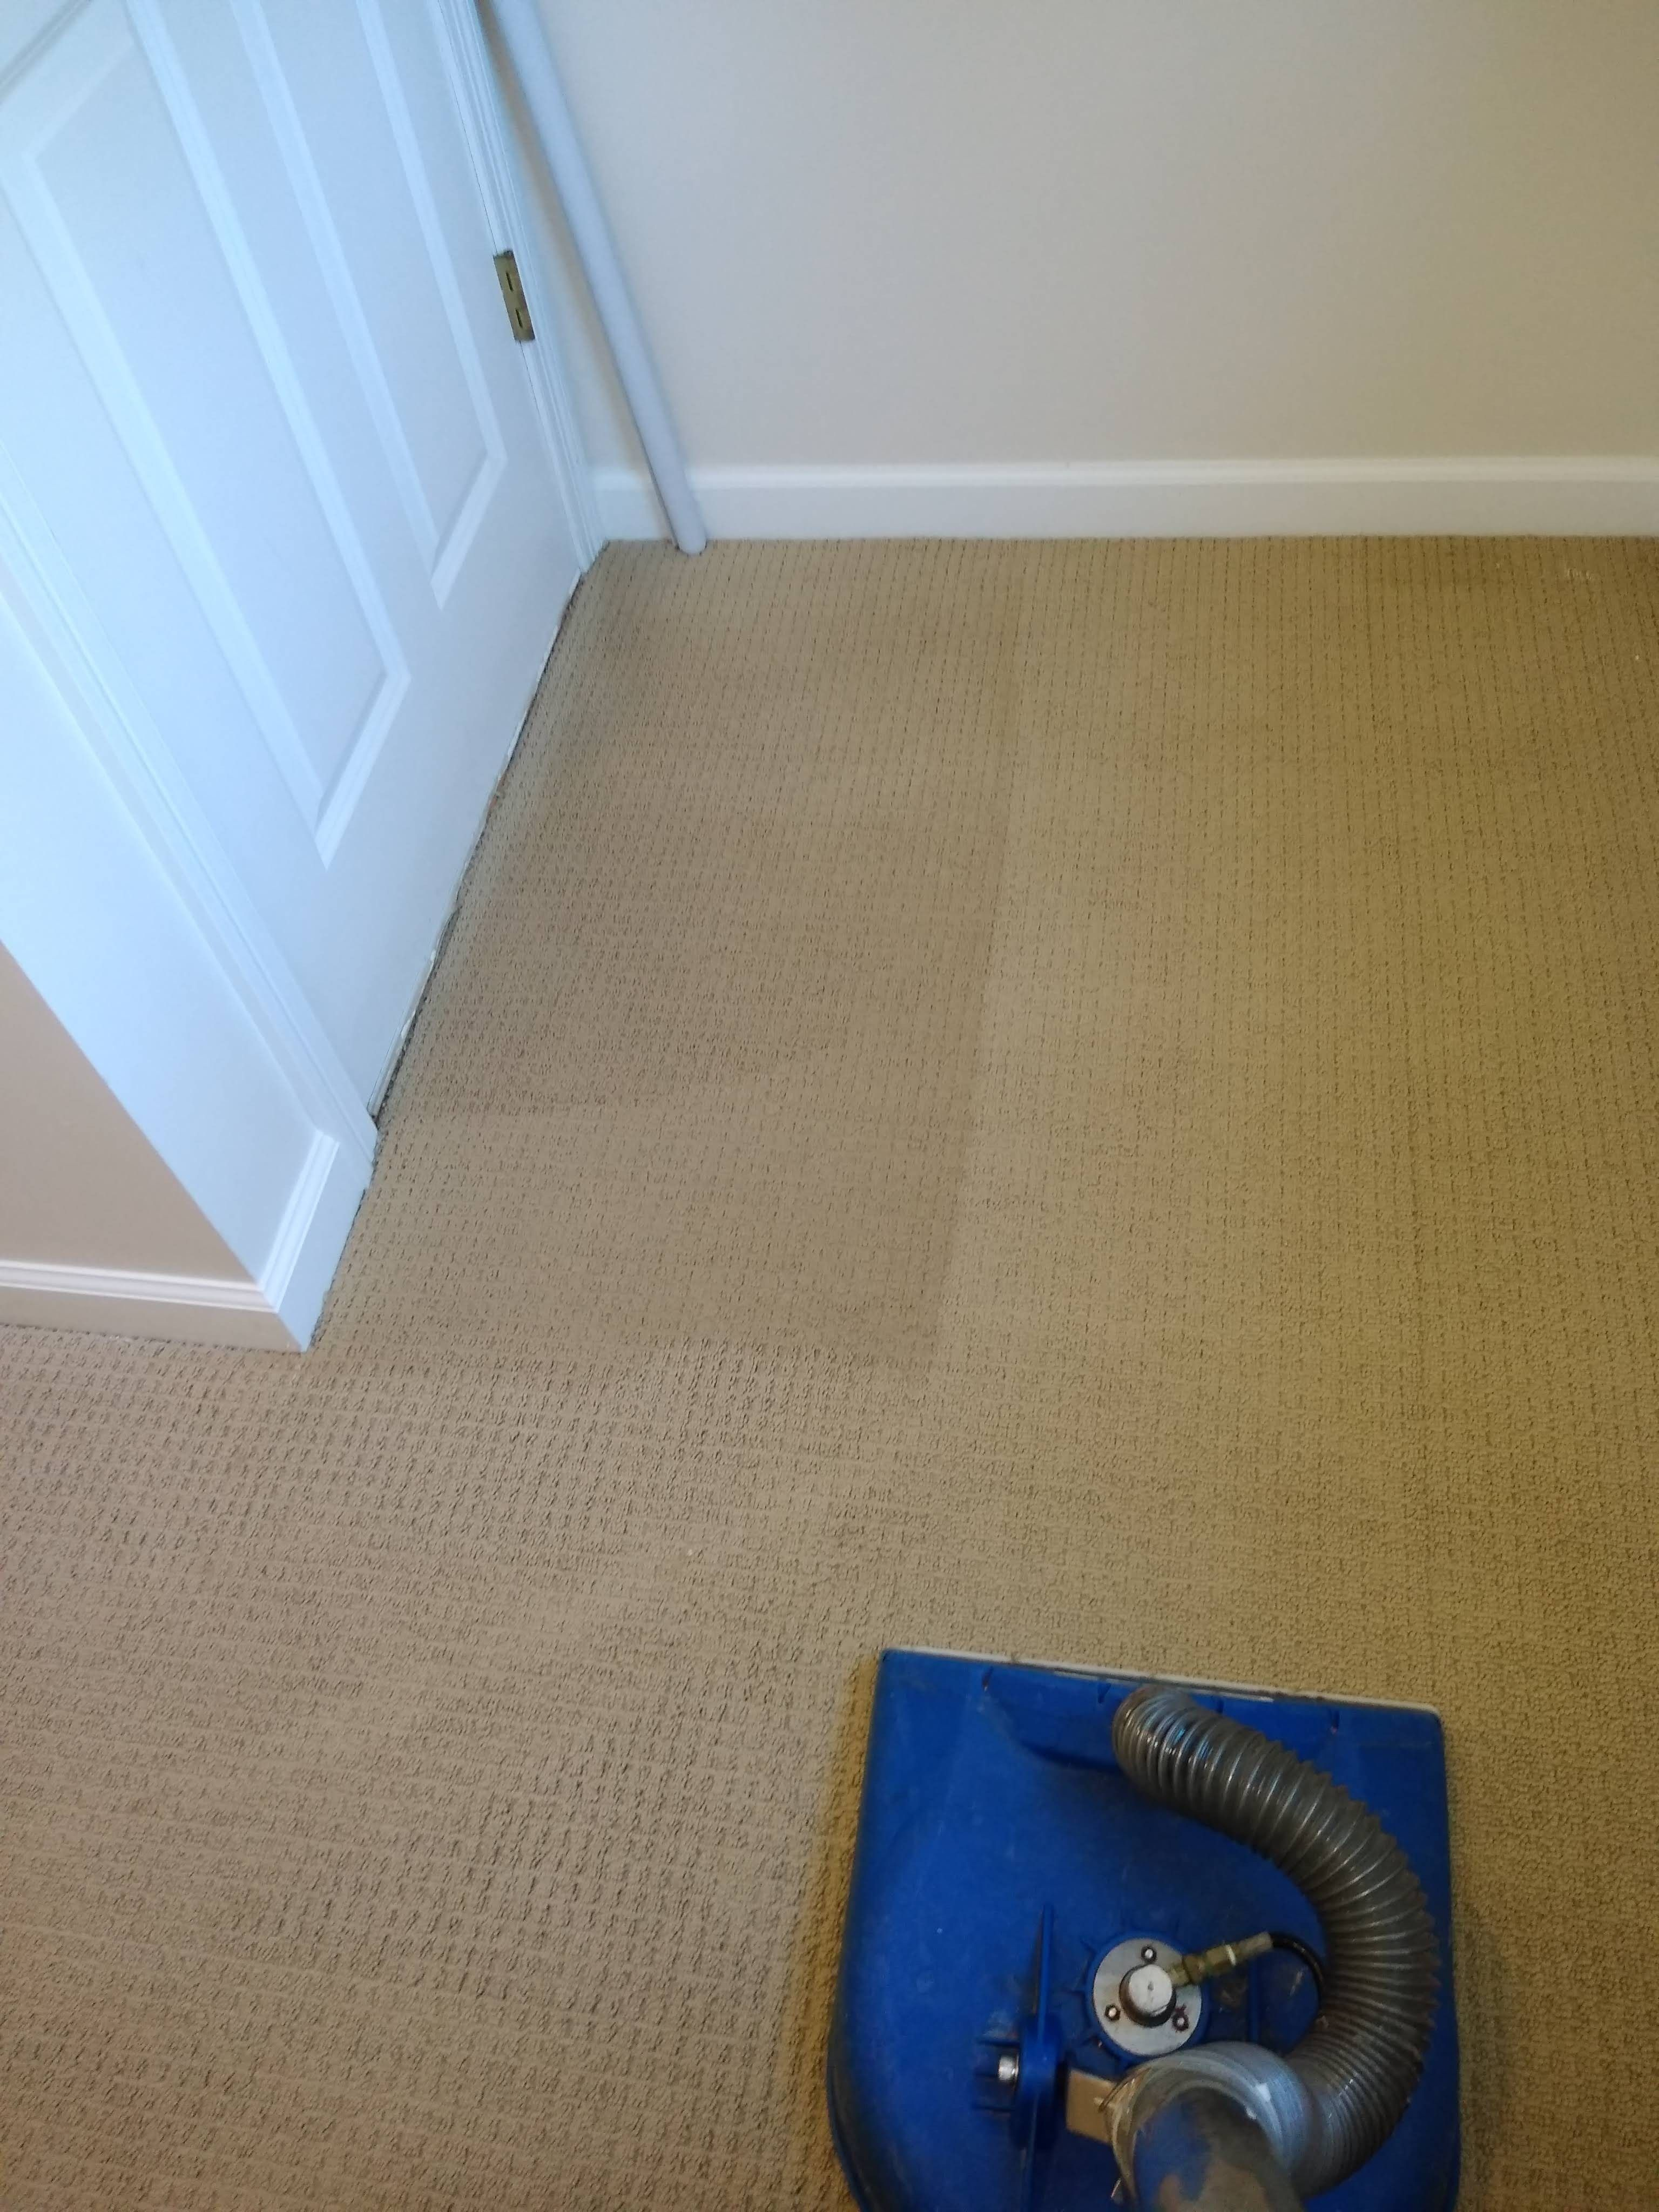 Carpet Cleaning In Massachusetts By Alpine Cleaners How To Clean Carpet Commercial Carpet Cleaners Cleaning Upholstery